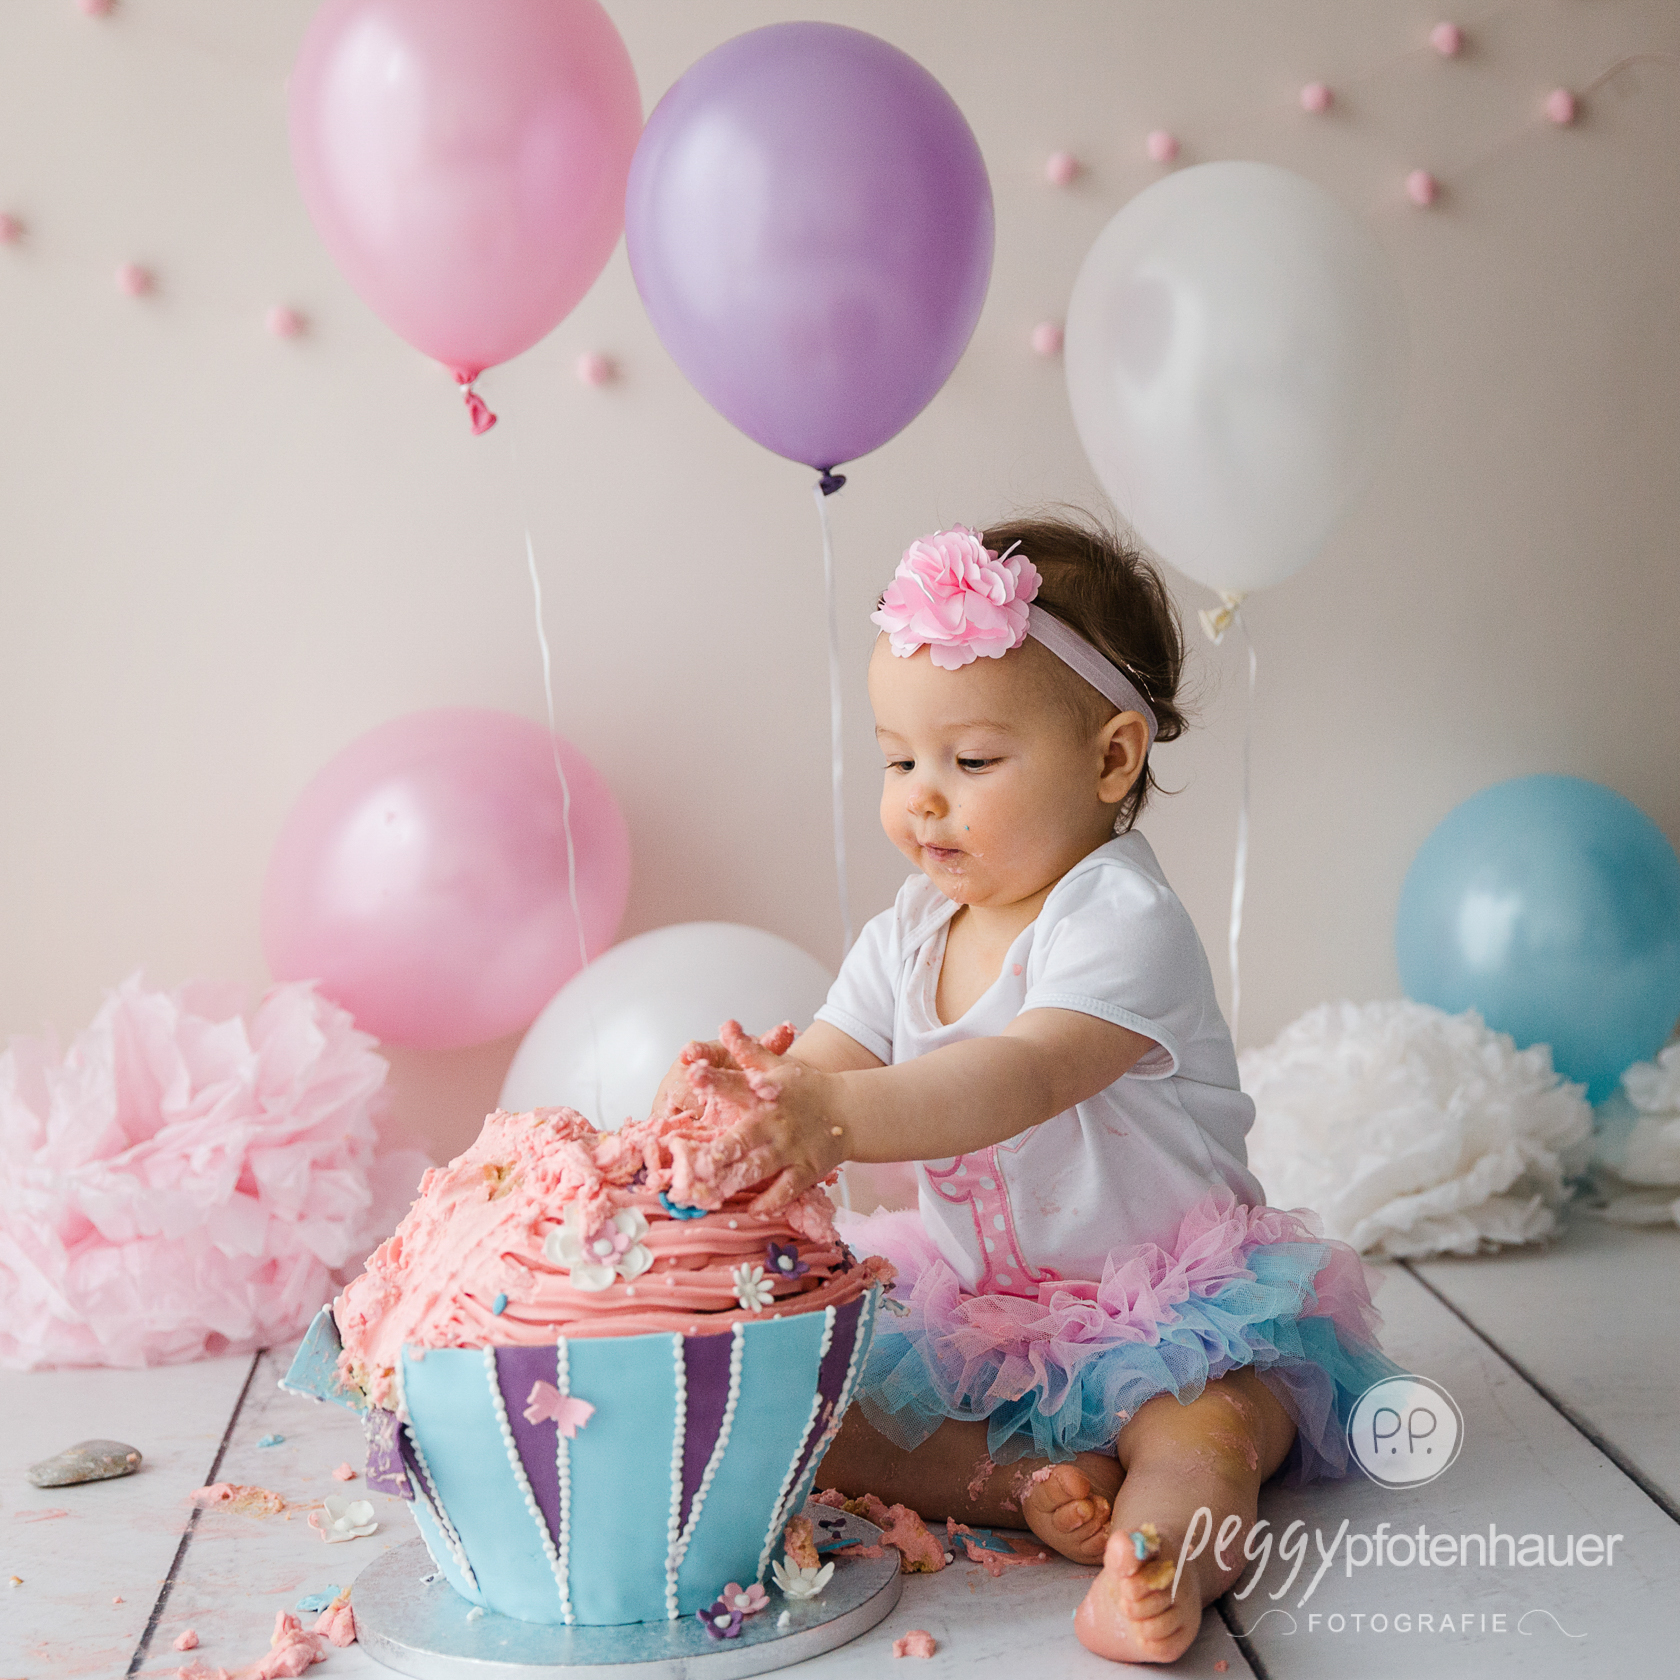 Cake Smash Fotostudio